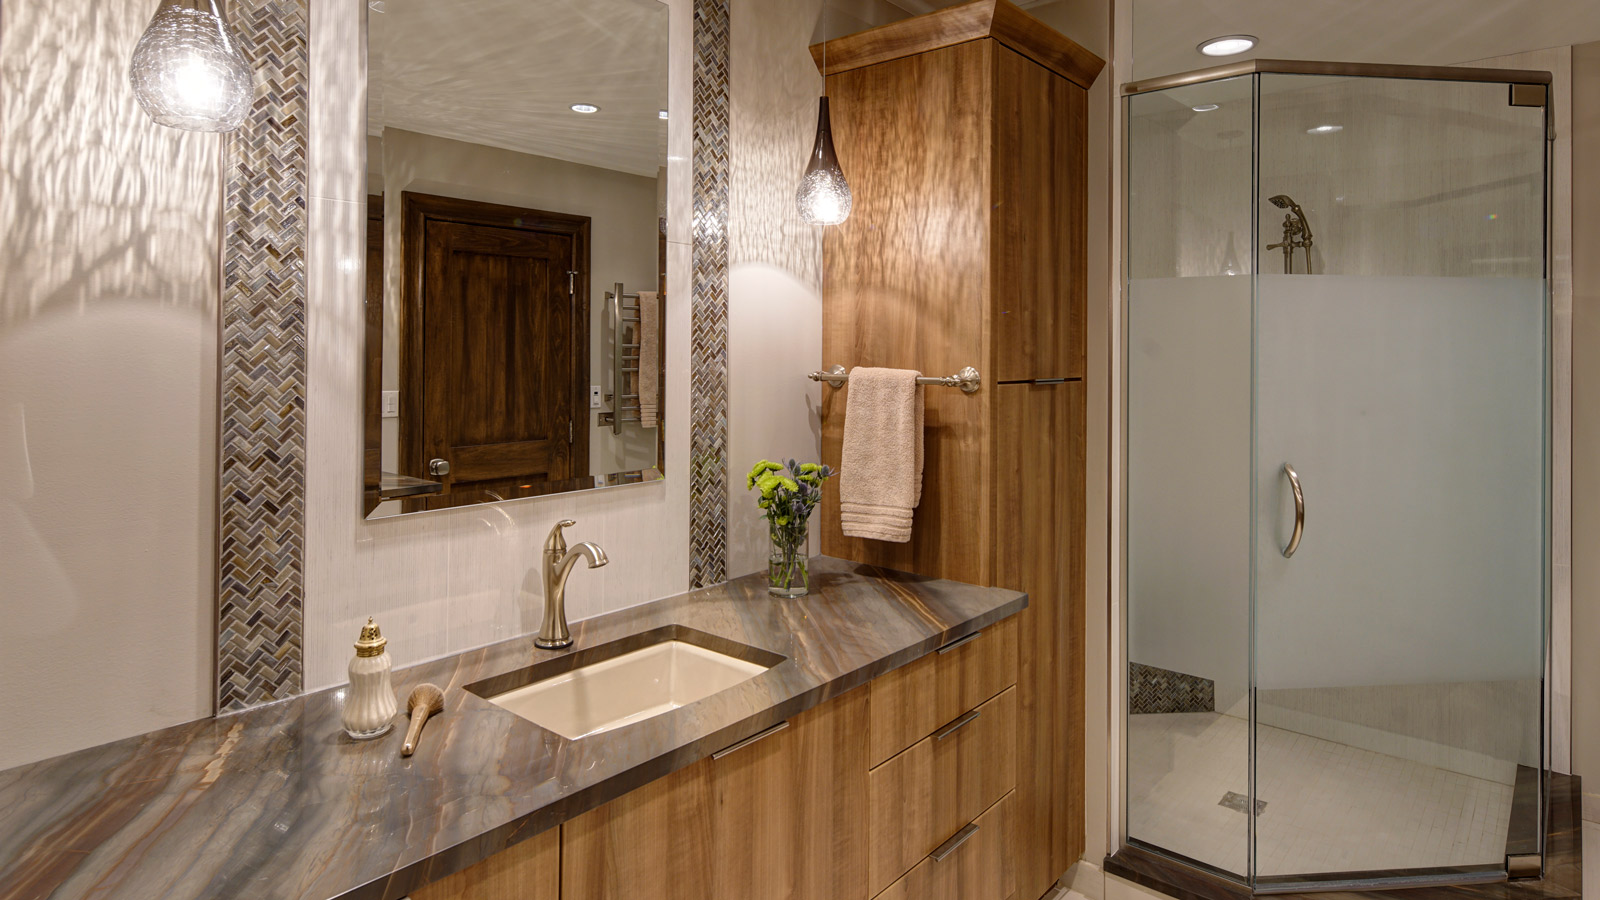 1600-x-900-Transitional-Rustic-Ranch-Master-Bath-Renovation-drury-design2